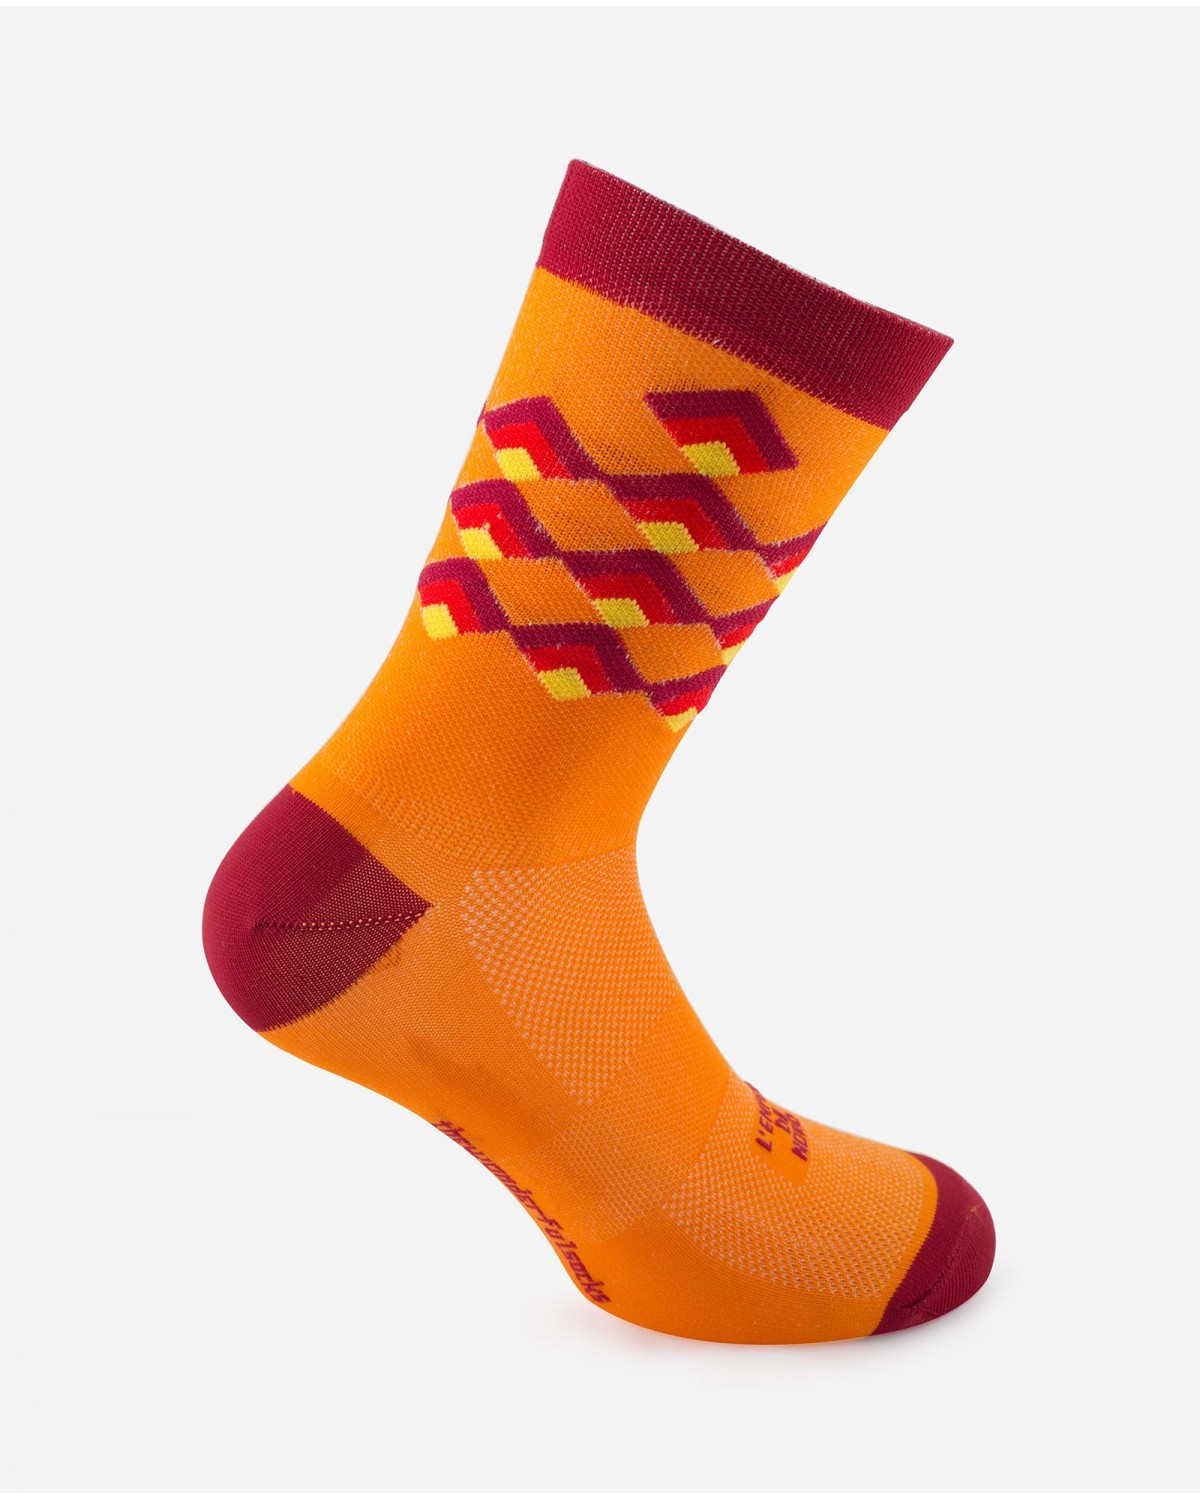 The Wonderful Socks Arenberg Socken